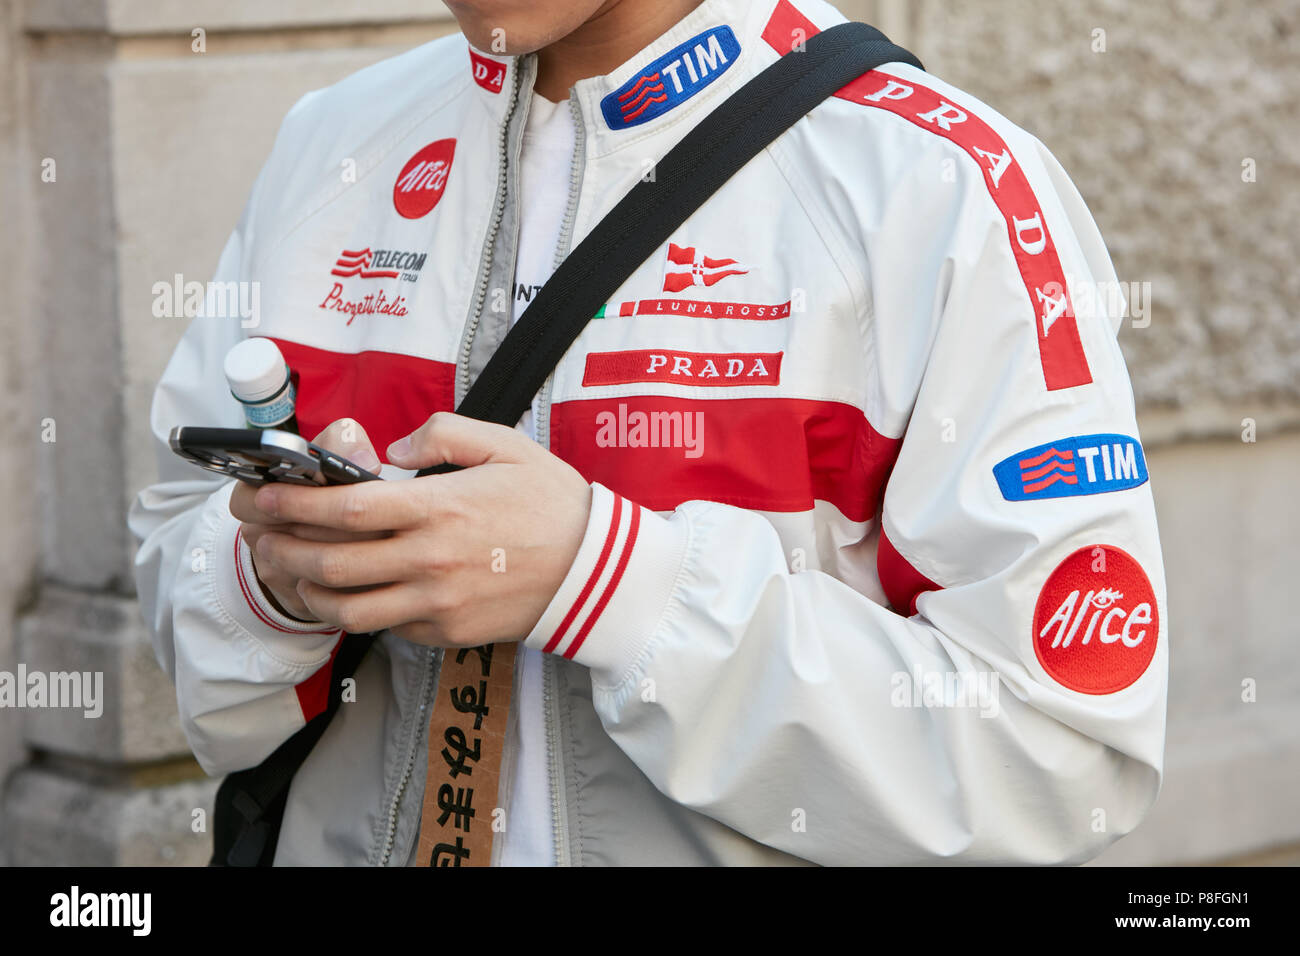 580dae712a329 MILAN - JUNE 17: Man with Prada Luna Rossa jacket looking at ...